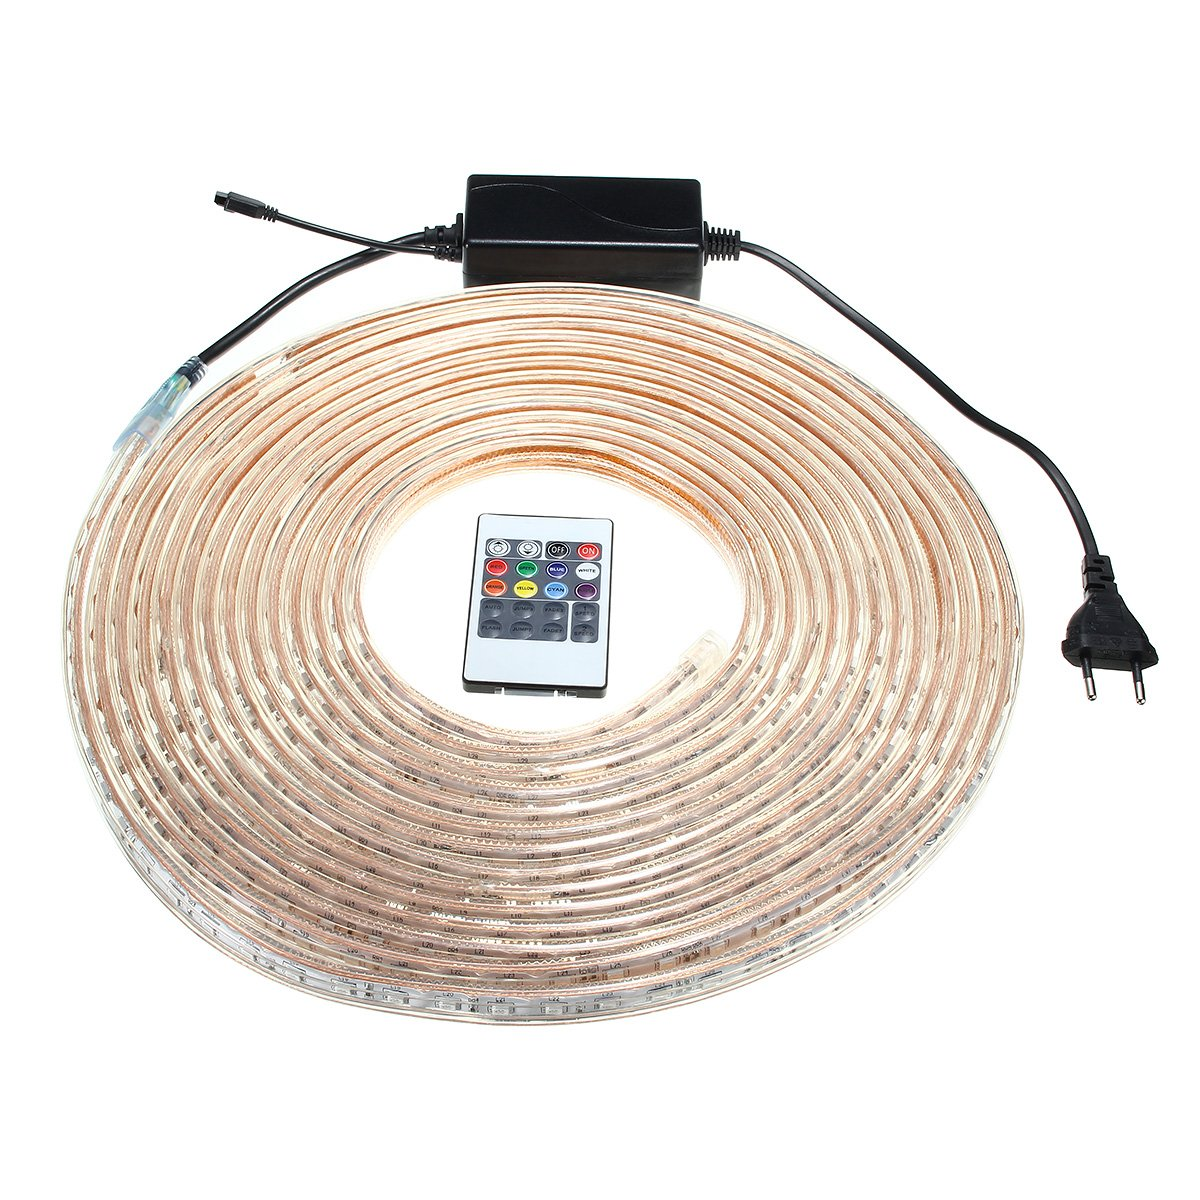 LYEJM 10/15M SMD5050 LED RGB Flexible Rope Outdoor Waterproof Strip Light + Plug + Remote Control AC220V LYEJM (Size : Length 10M)